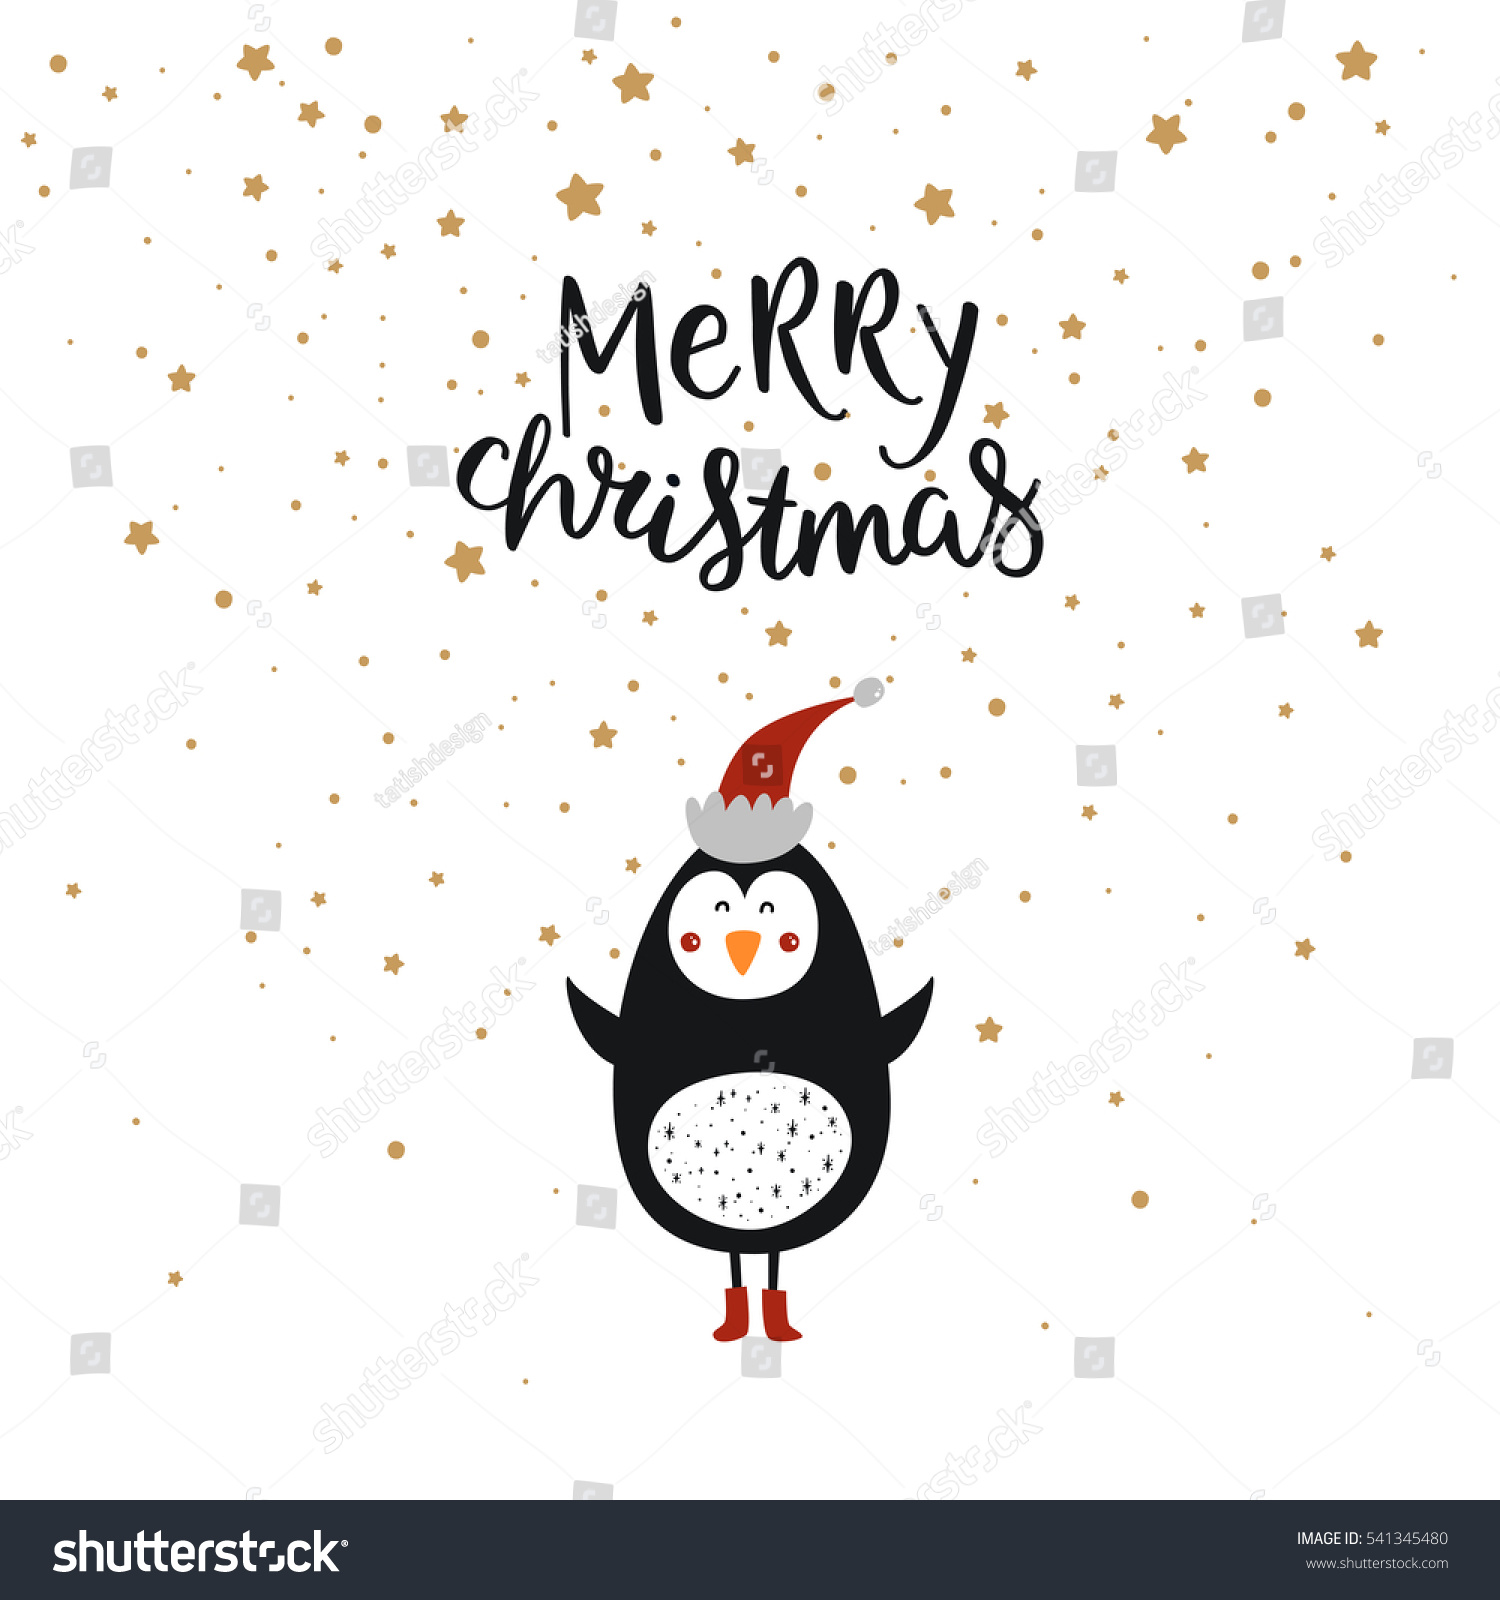 online image   photo editor shutterstock editor merry christmas and happy new year clipart free merry christmas and happy new year clipart images